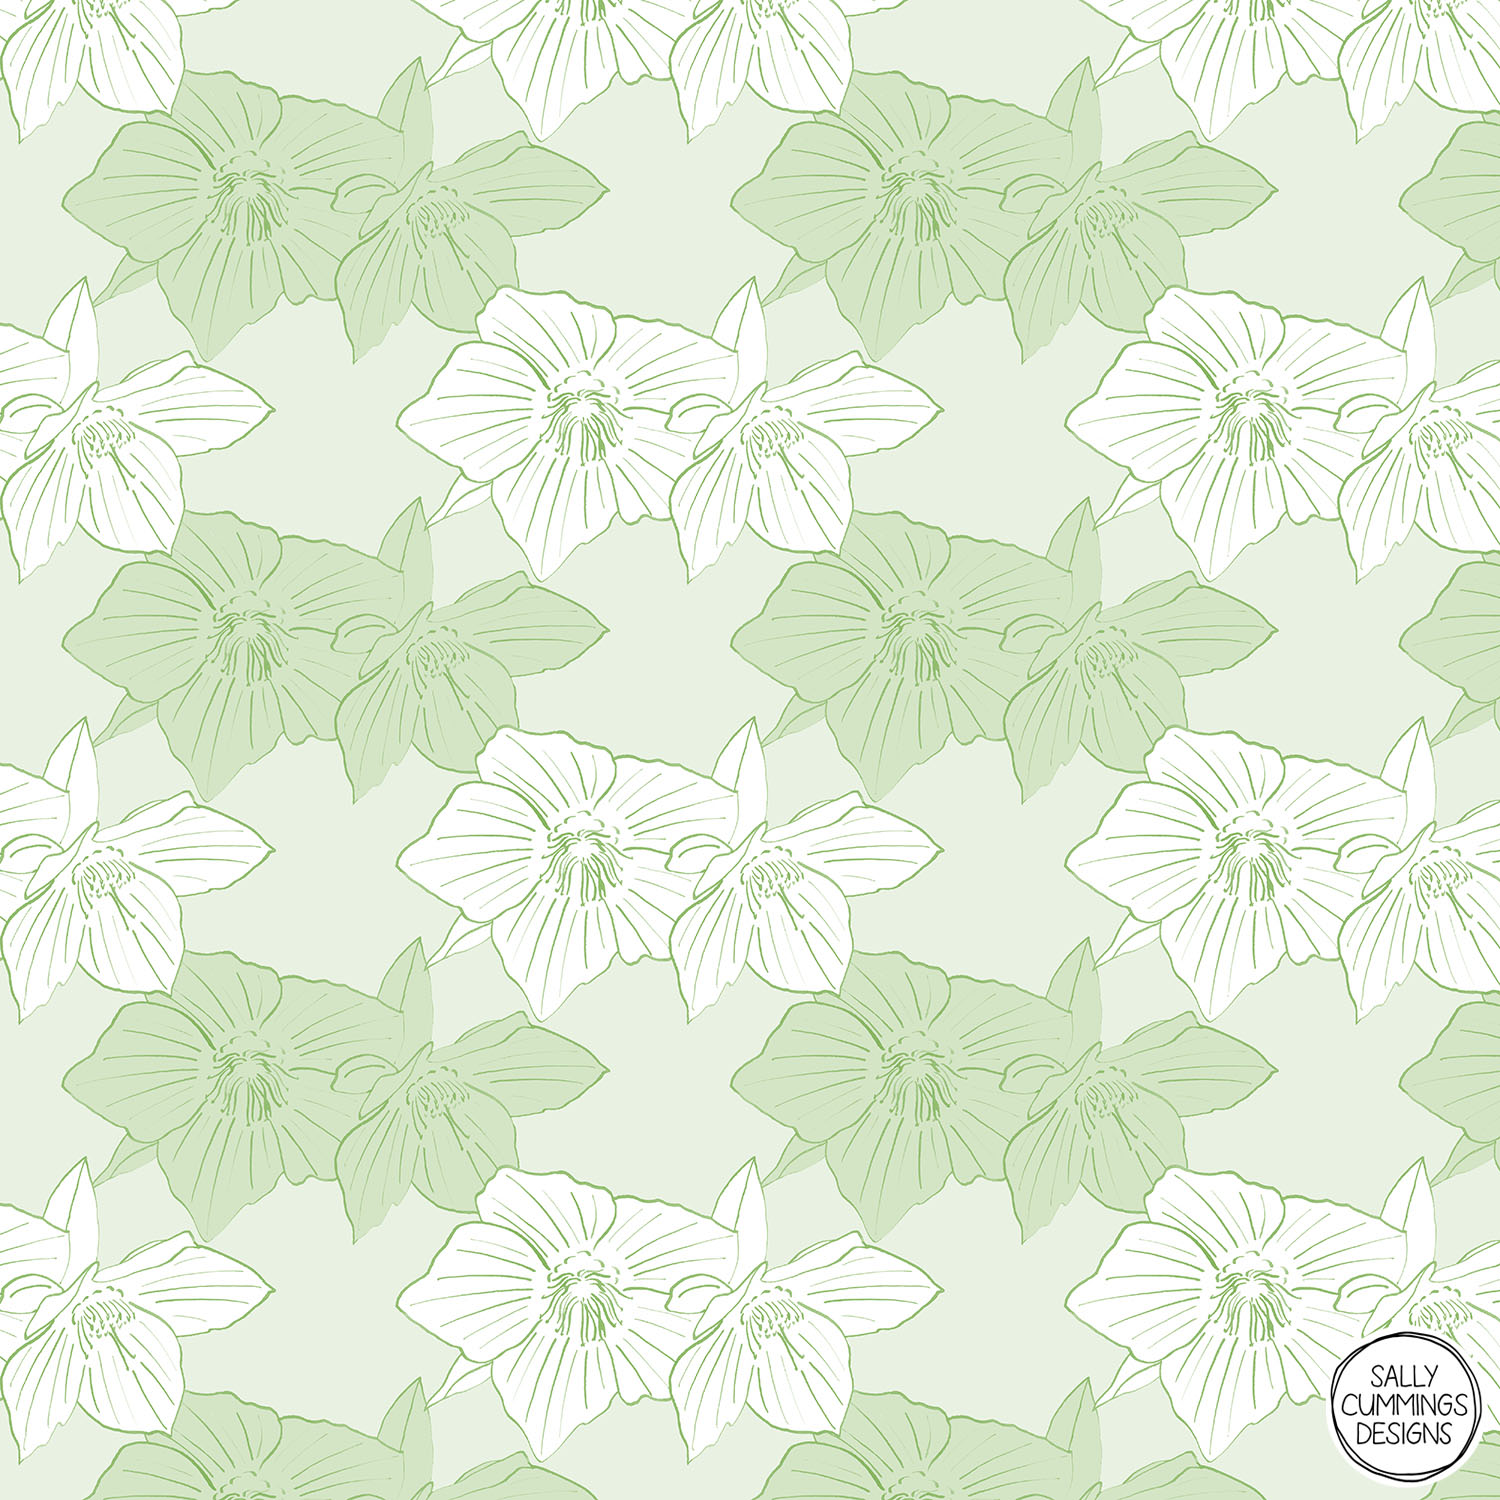 Sally Cummings Designs - Green Hellebores Pattern